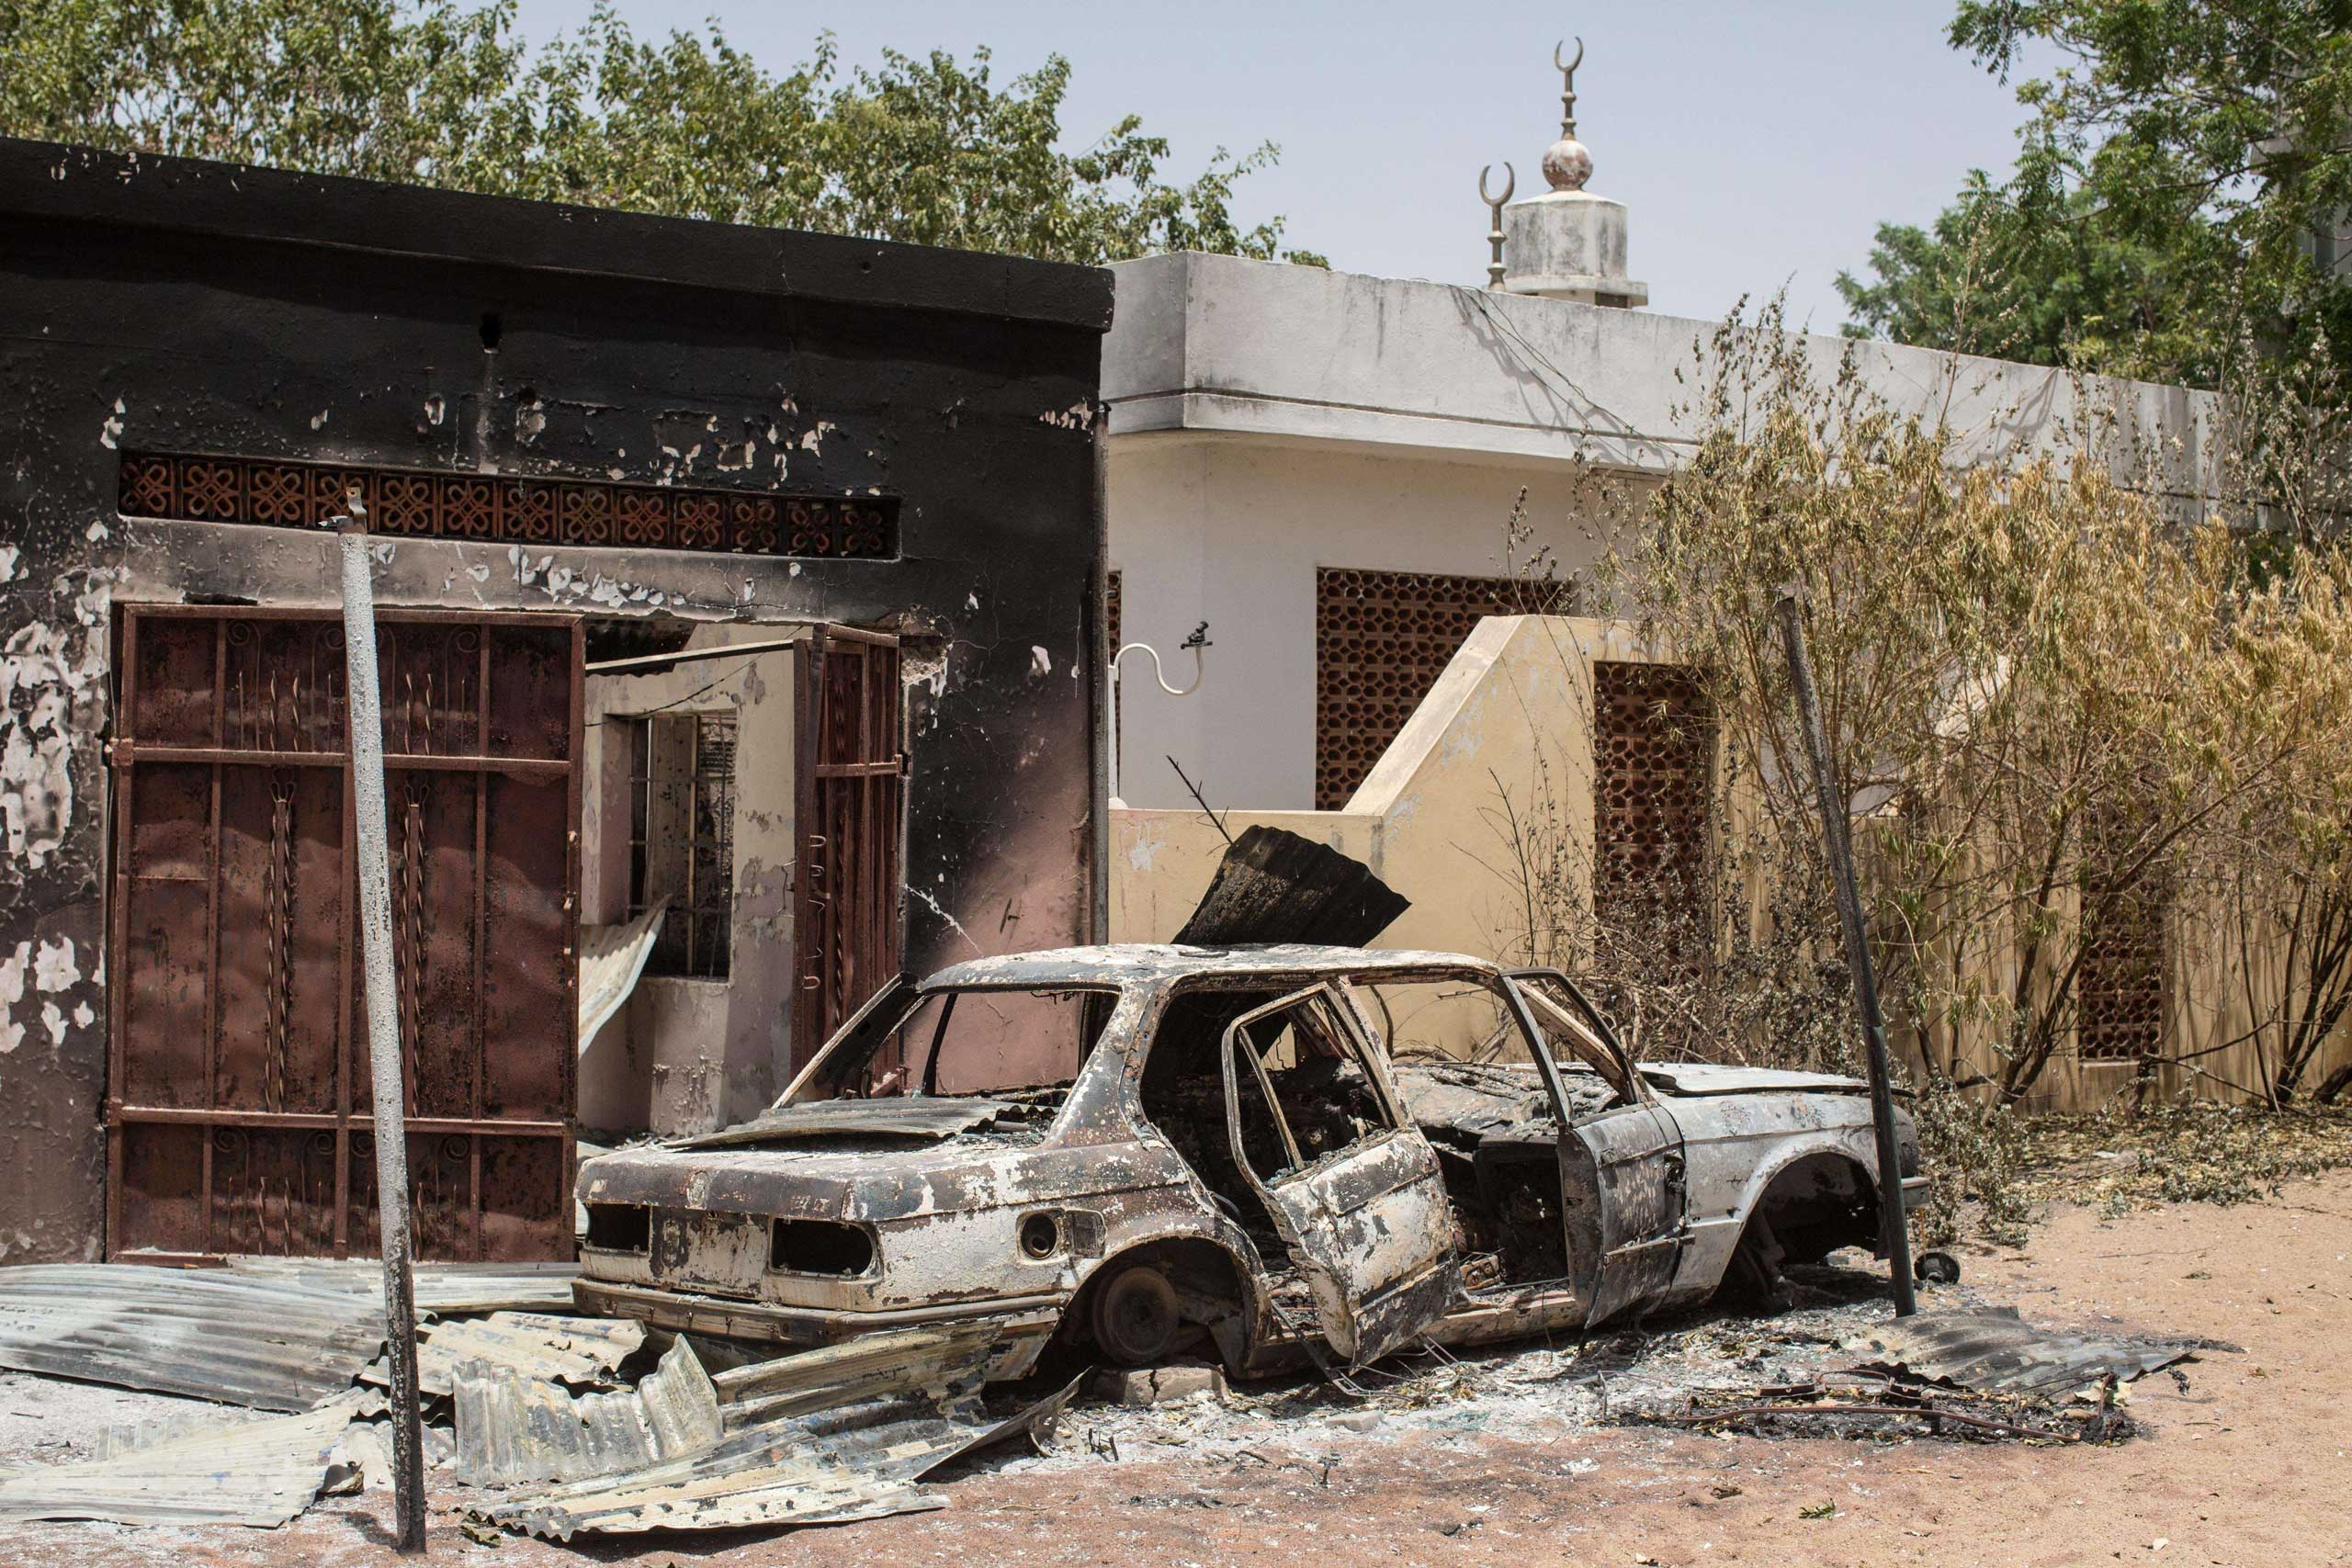 The wreckage of a burnt car sits outside the former emir's palace that was used by Boko Haram militants as a headquarters but was burned down when they fled Bama, March 25, 2015.